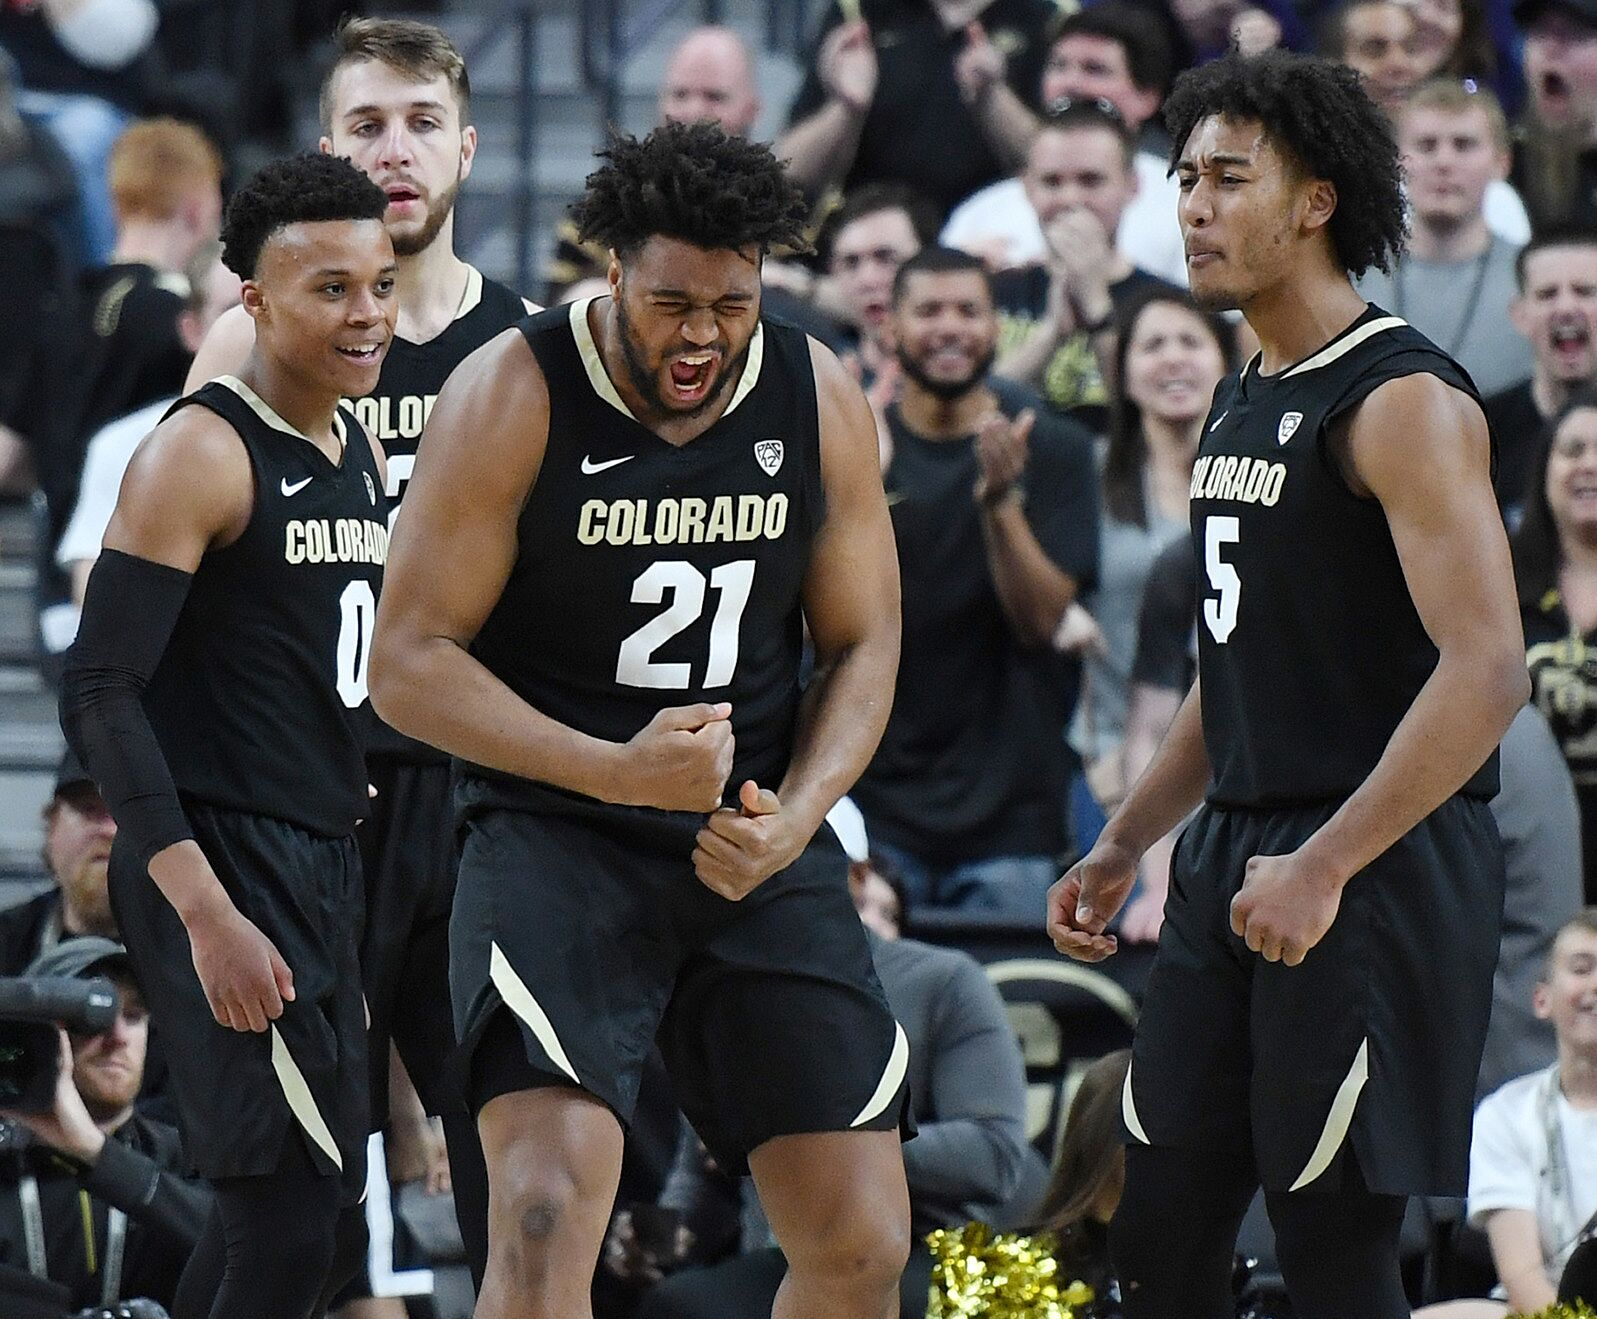 NCAA Basketball Recruiting: Top 25 impact Junior College transfers for 2019-20